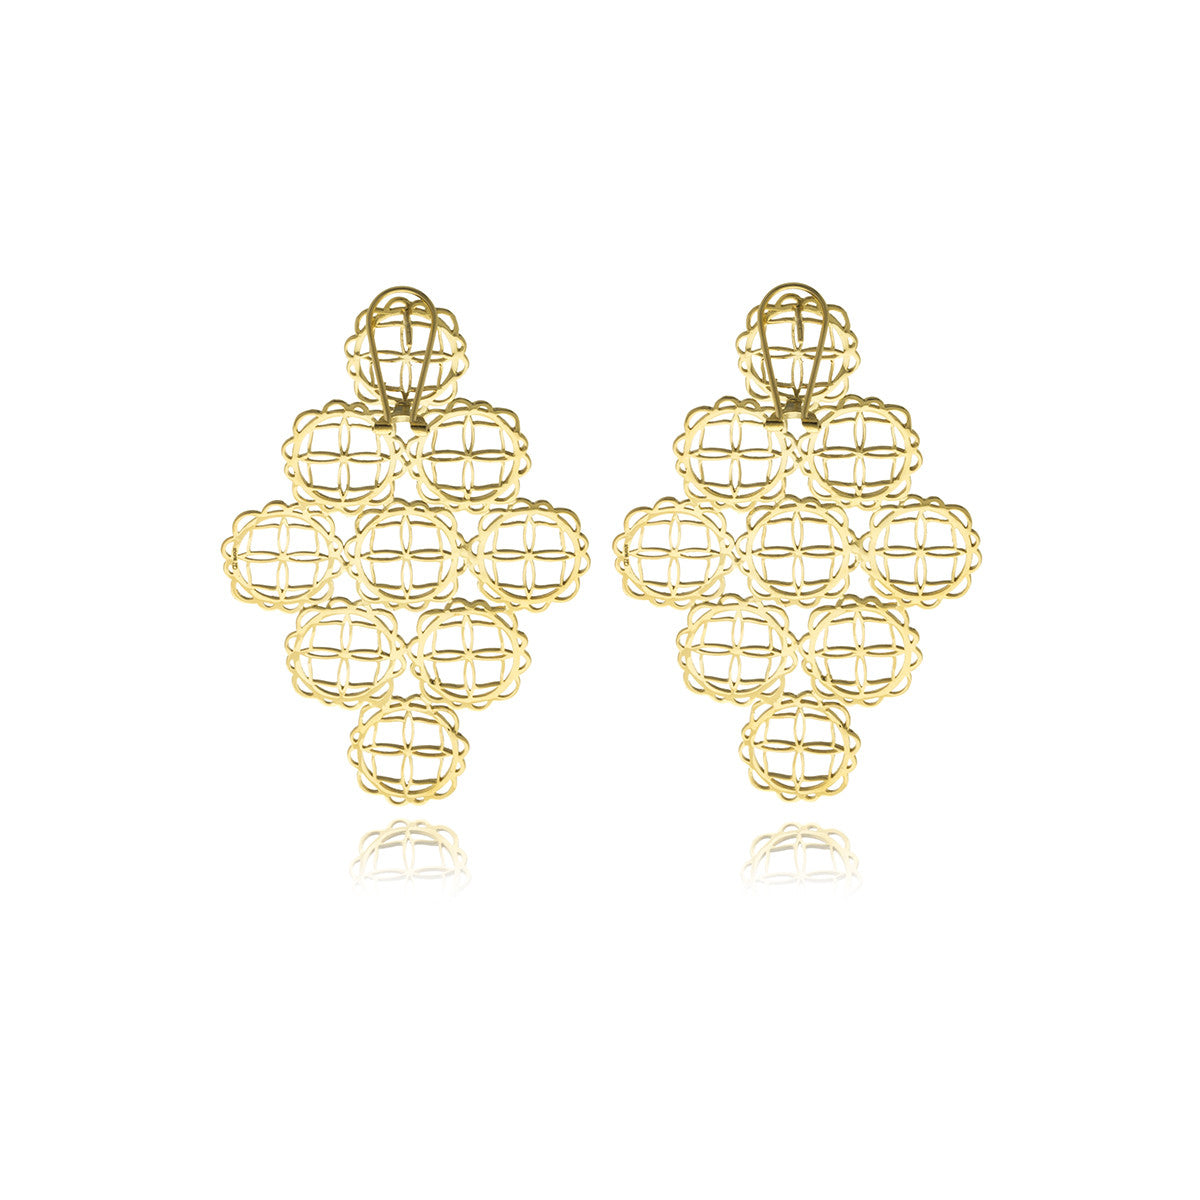 Signature Gold Long Earrings - MCK Brands